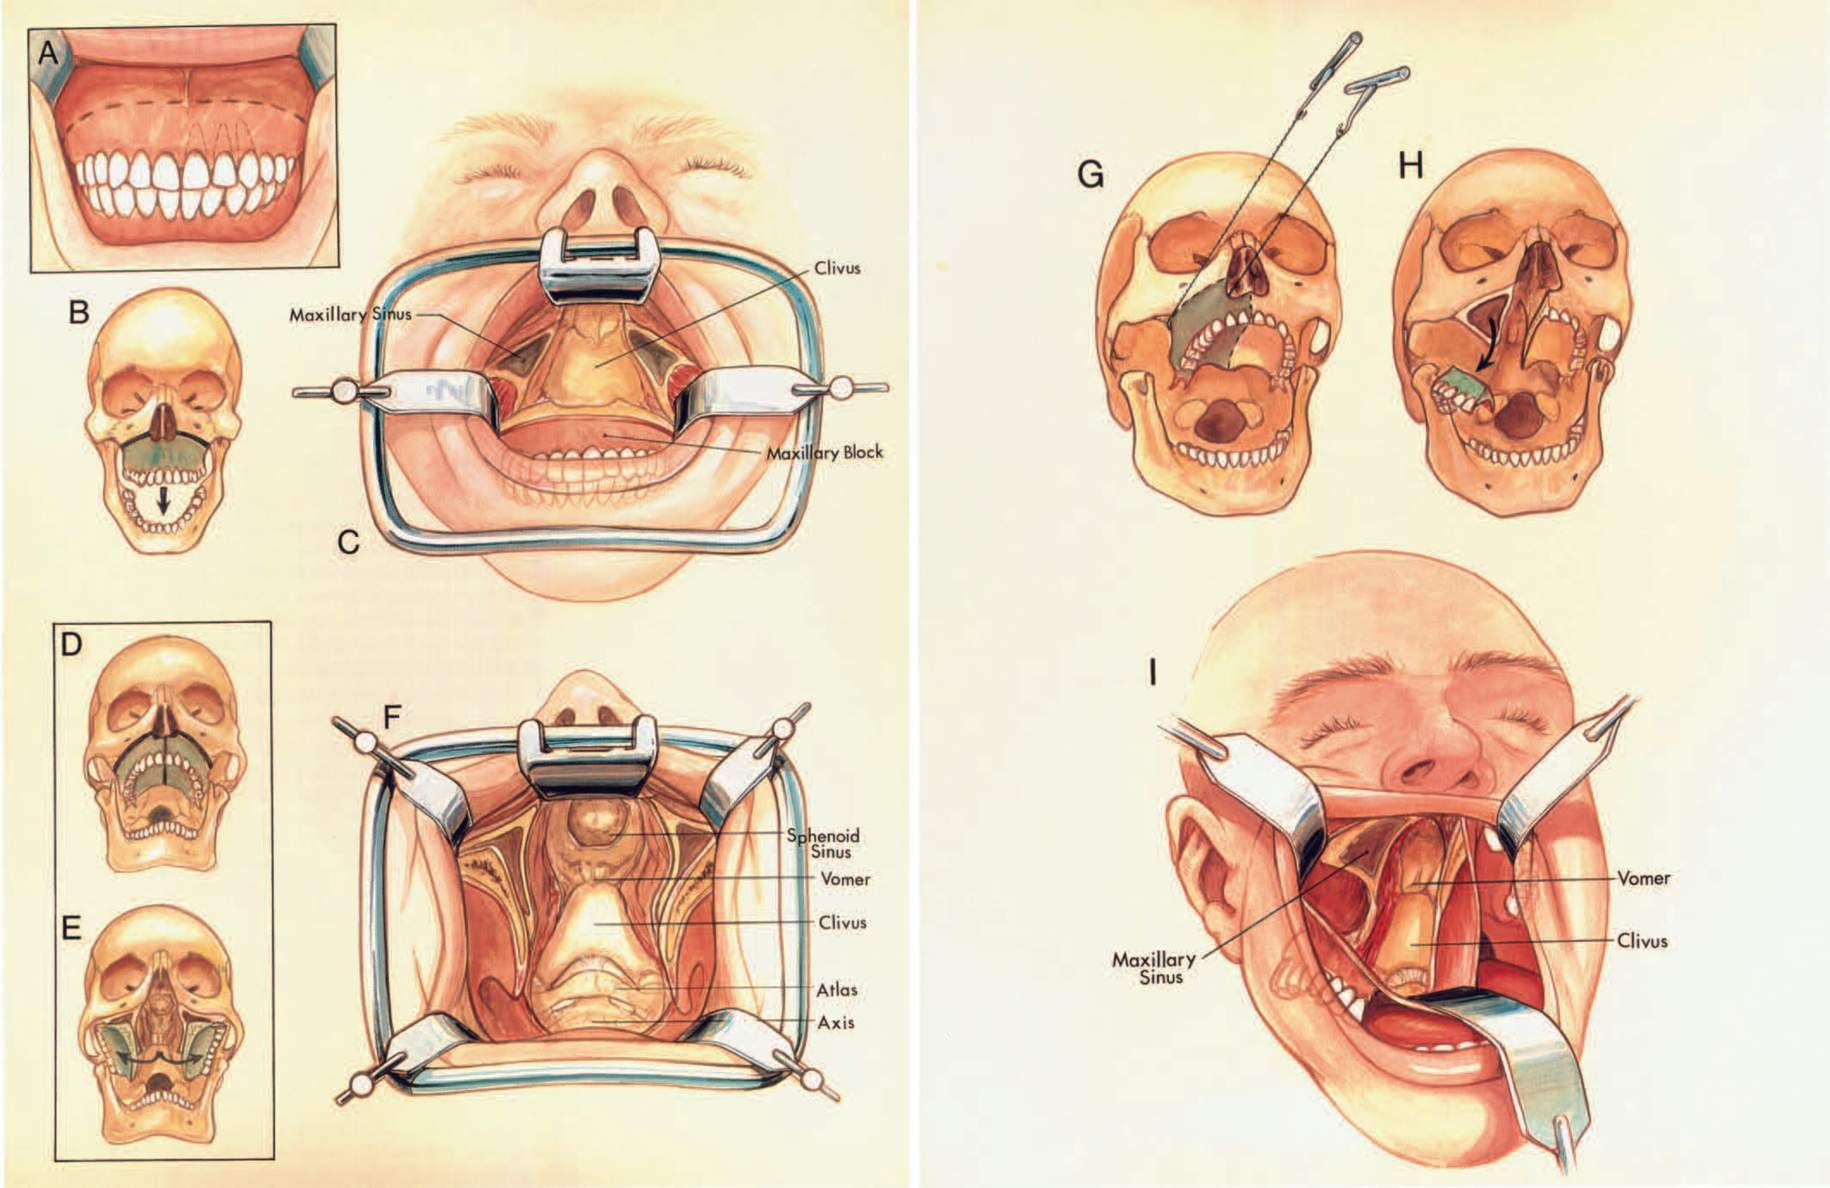 FIGURE 6.16. Transmaxillary approaches. Three variants of the transmaxillary approaches are shown. All three can be completed through an intraoral incision with degloving. Another type of incision extending onto the face, such as a Weber-Fergusson incision, might be considered. A, the upper lip is elevated and the mucosa is incised along the upper alveolar margin around the molars. The mucosa is elevated from the anterior face of the maxilla below the infraorbital foramen, but high enough to avoid the dental roots. The mucosa is elevated from the nasal surface of the maxilla, and the nasal septum is divided above its attachment to the palate. B, the saw cuts (solid line) extend into the maxillary sinus on both sides. The free block of maxilla is moved downward (arrow) to give access to the clivus. C, the intraoral retractor has been placed. Displacing the maxilla downward gives wide access to the clivus. D, a modified technique, called the extended maxillectomy, includes the LeForte I osteotomy with a midline incision of the hard and soft palate (solid lines). E, this allows the halves of the maxilla, which are attached to the muscles and vessels in the infratemporal fossa, to be reflected laterally, providing wider exposure to the clivus and upper cervical spine. F, retractors have been placed to expose the clivus and upper cervical area. The approach can be extended upward into the sphenoid and ethmoid sinuses and downward to C2 or C3. G–I. Unilateral maxillotomy. G, in this approach, half of the maxilla is mobilized by a bone cut, which extends back to the infratemporal fossa in the area just below the infraorbital foramen, and the maxilla is divided in the midline. A mucosal incision is made along the low surface of the hard palate parallel to the midline on the side opposite the saw cut through the hard palate, and the anterior face of the maxilla is degloved on one side. The soft palate is left intact. H, the unilateral block of maxilla, which is still attached to the structures in the infratemporal fossa along the pterygoid plates and to the soft palate, which is not interrupted, is folded downward into the floor of the mouth. I, the anterior part of the nasal septum is left undisturbed, but the posterior part is removed along with some of the turbinates and wall of the sinuses to provide a wide exposure of the clivus. This exposure can be enlarged to include the walls of the sphenoid and ethmoid sinuses. (From, Rhoton AL Jr: Anatomical basis of surgical approaches to the region of the foramen magnum, in Dickman CA, Spetzler RF, Sonntag VKH (eds): Surgery of the Craniovertebral Junction. New York, Thieme Medical Publishers, Inc., 1998, pp 13–57 [24].)